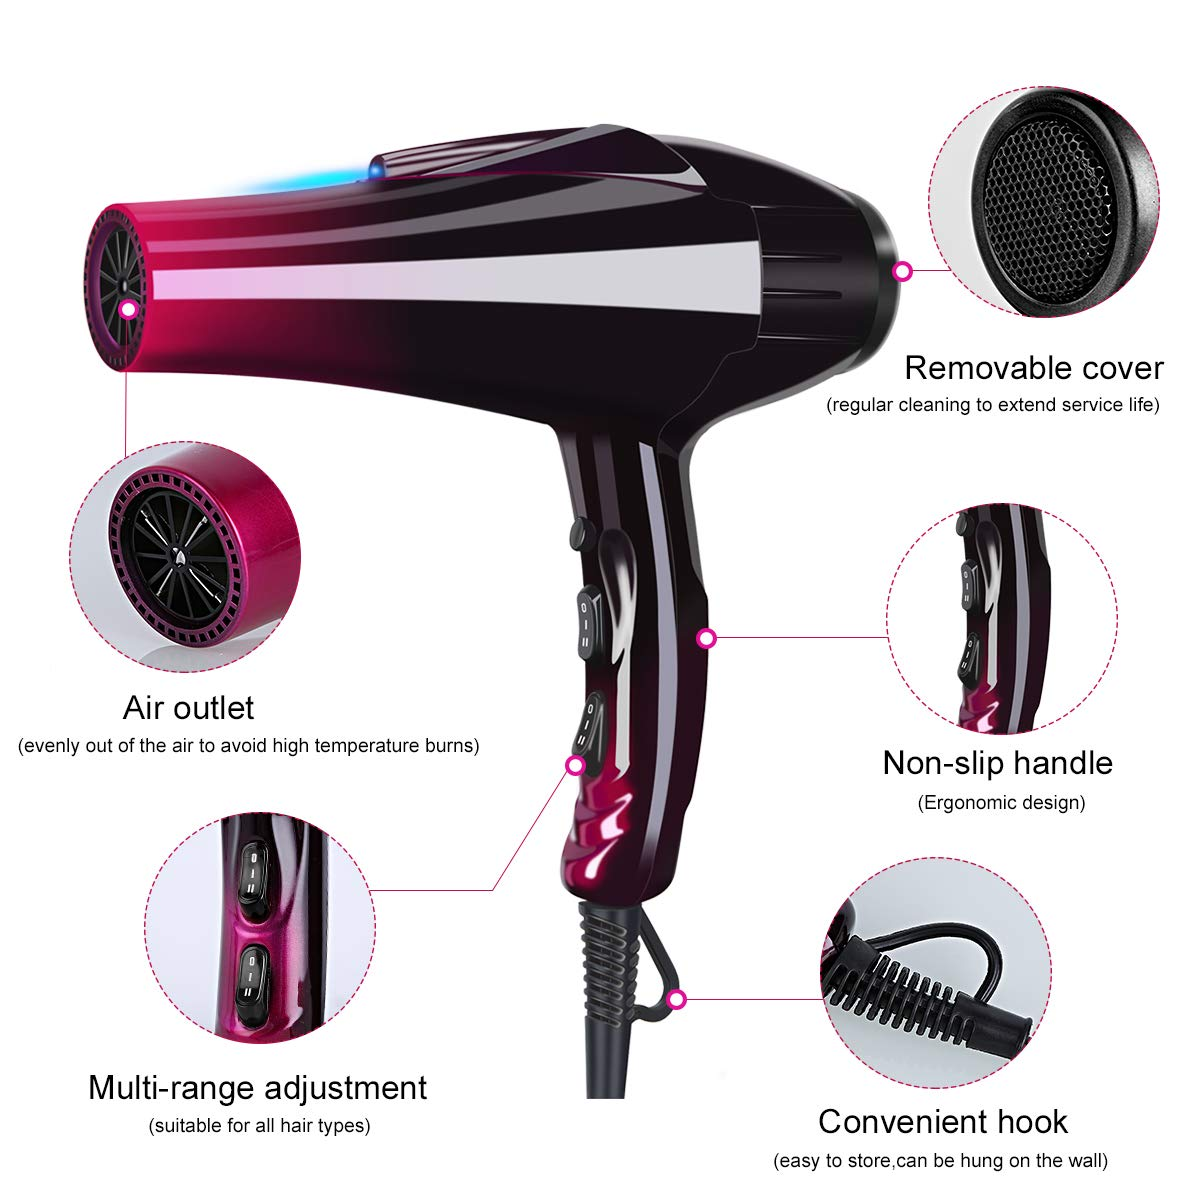 Professional Hair Dryer with Blue Light Far Infrared Negative Ionic 3500W Blow Dryer Fast Drying Heat Hairdryer Powerful Home Salon hair dryers